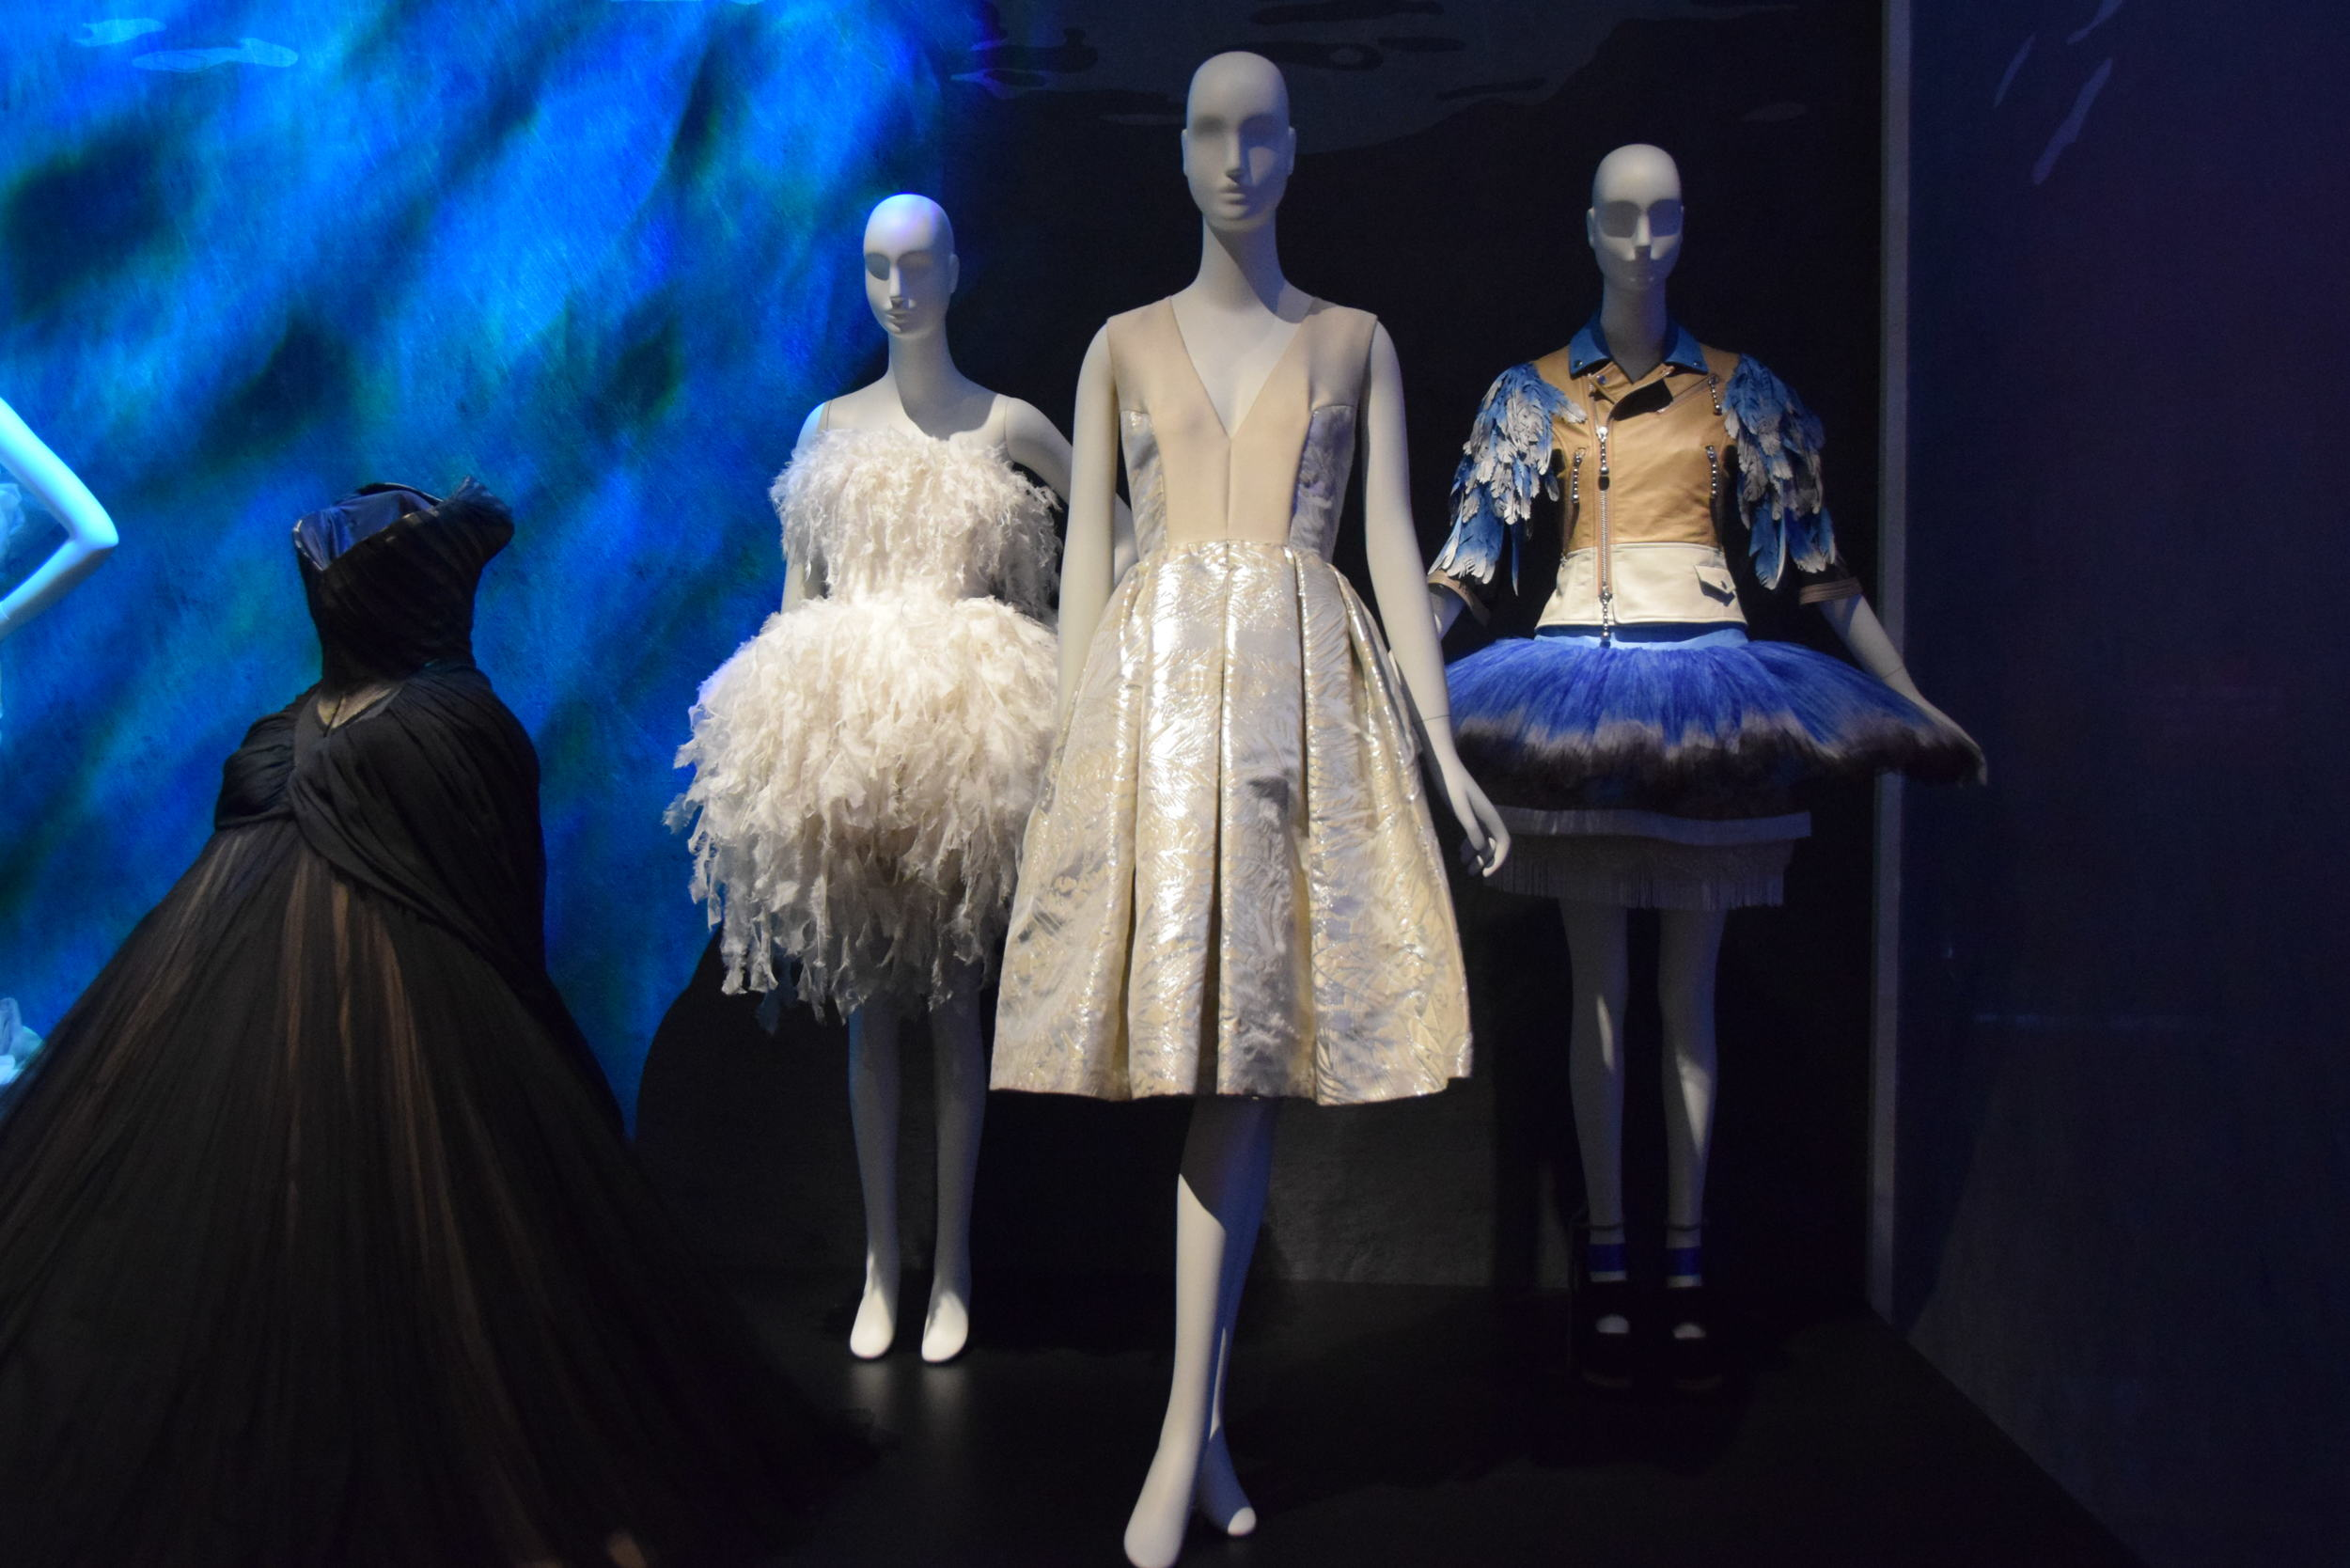 From L to R: Charles James (1954-55),Jean Louis Sabaji (2015),unknown,Undercover (2015)